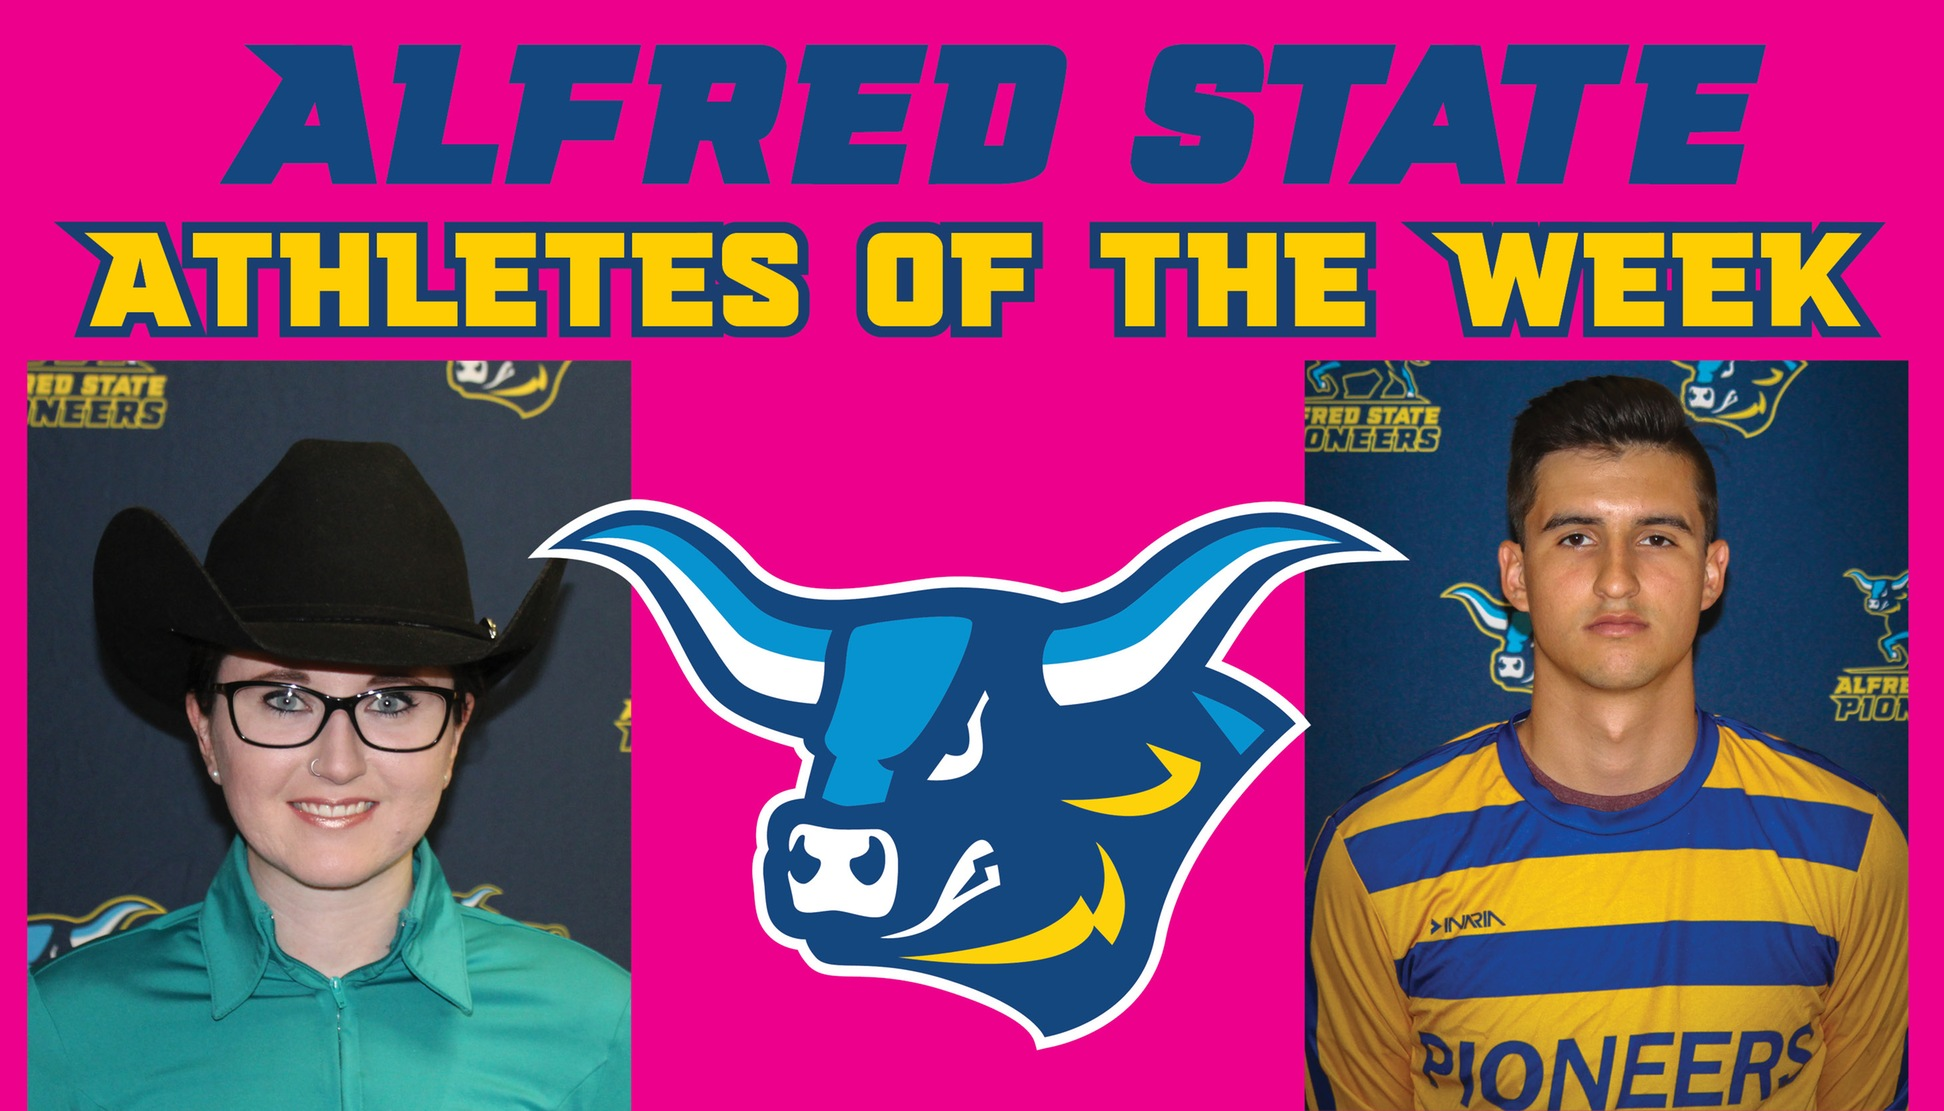 Meghan Castoro and Nico Coria Named Athletes of the Week